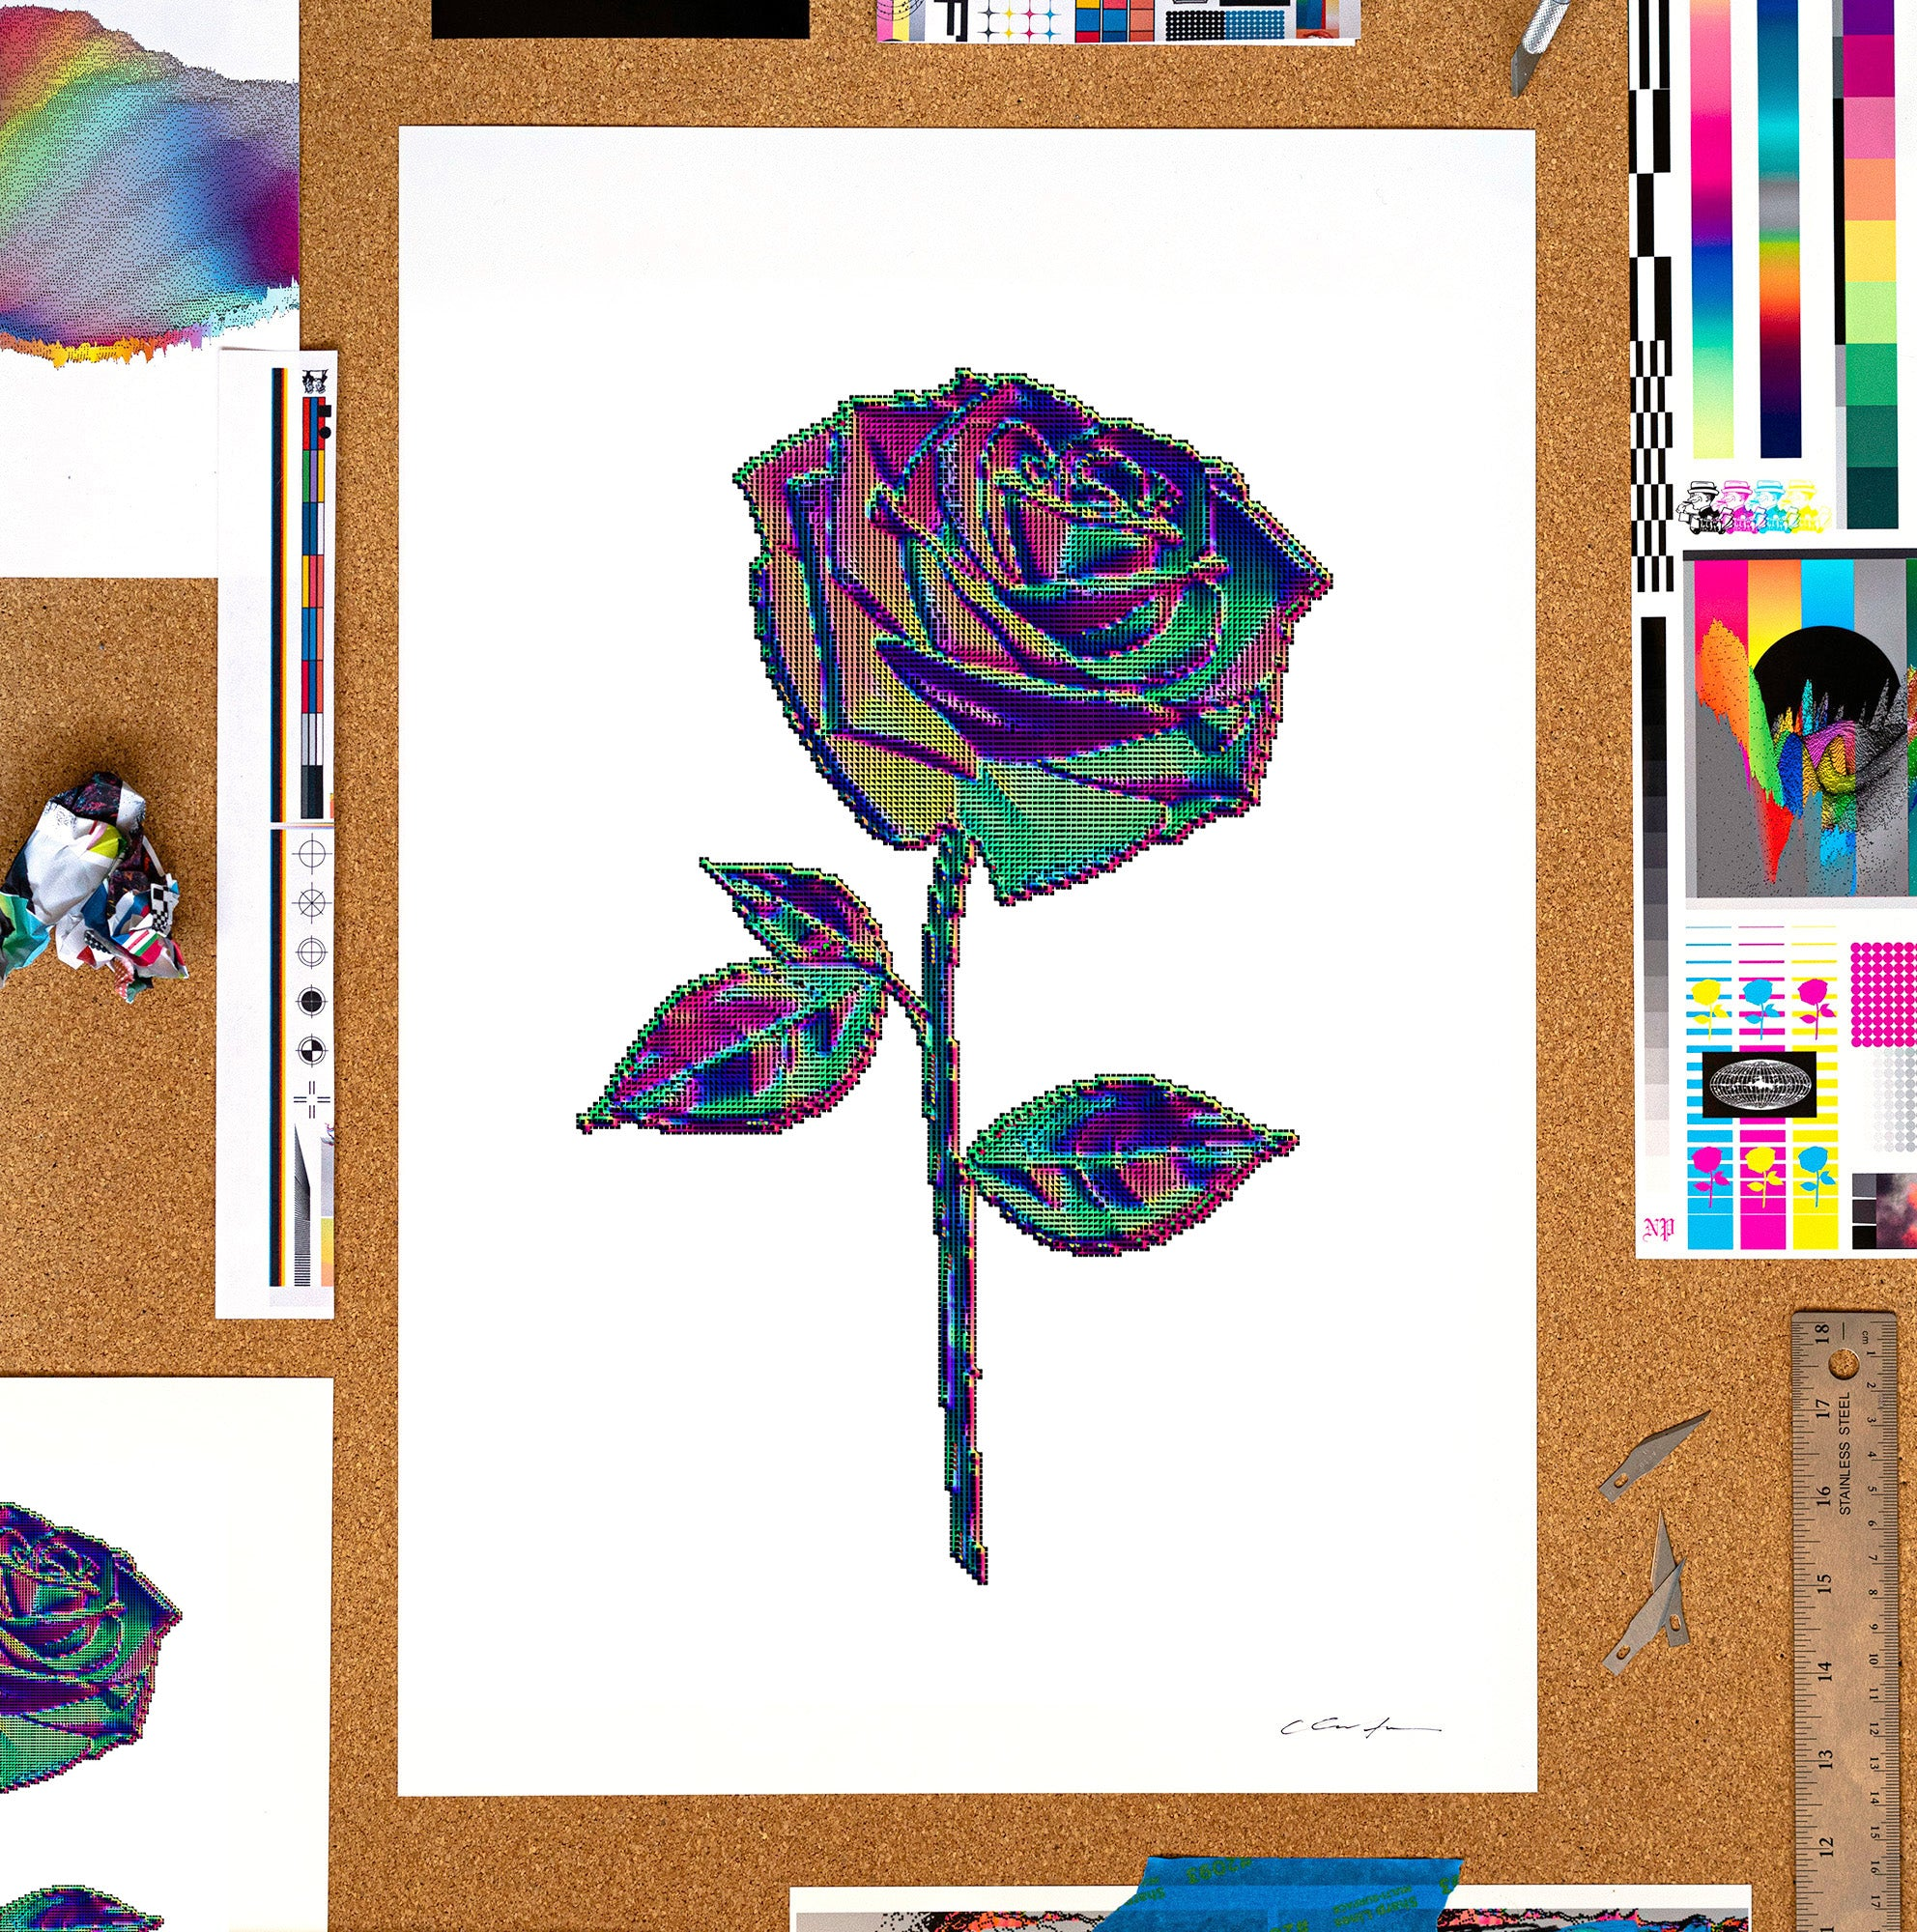 'FLOWER 1' (Signed Print Edition) — $88 / $155